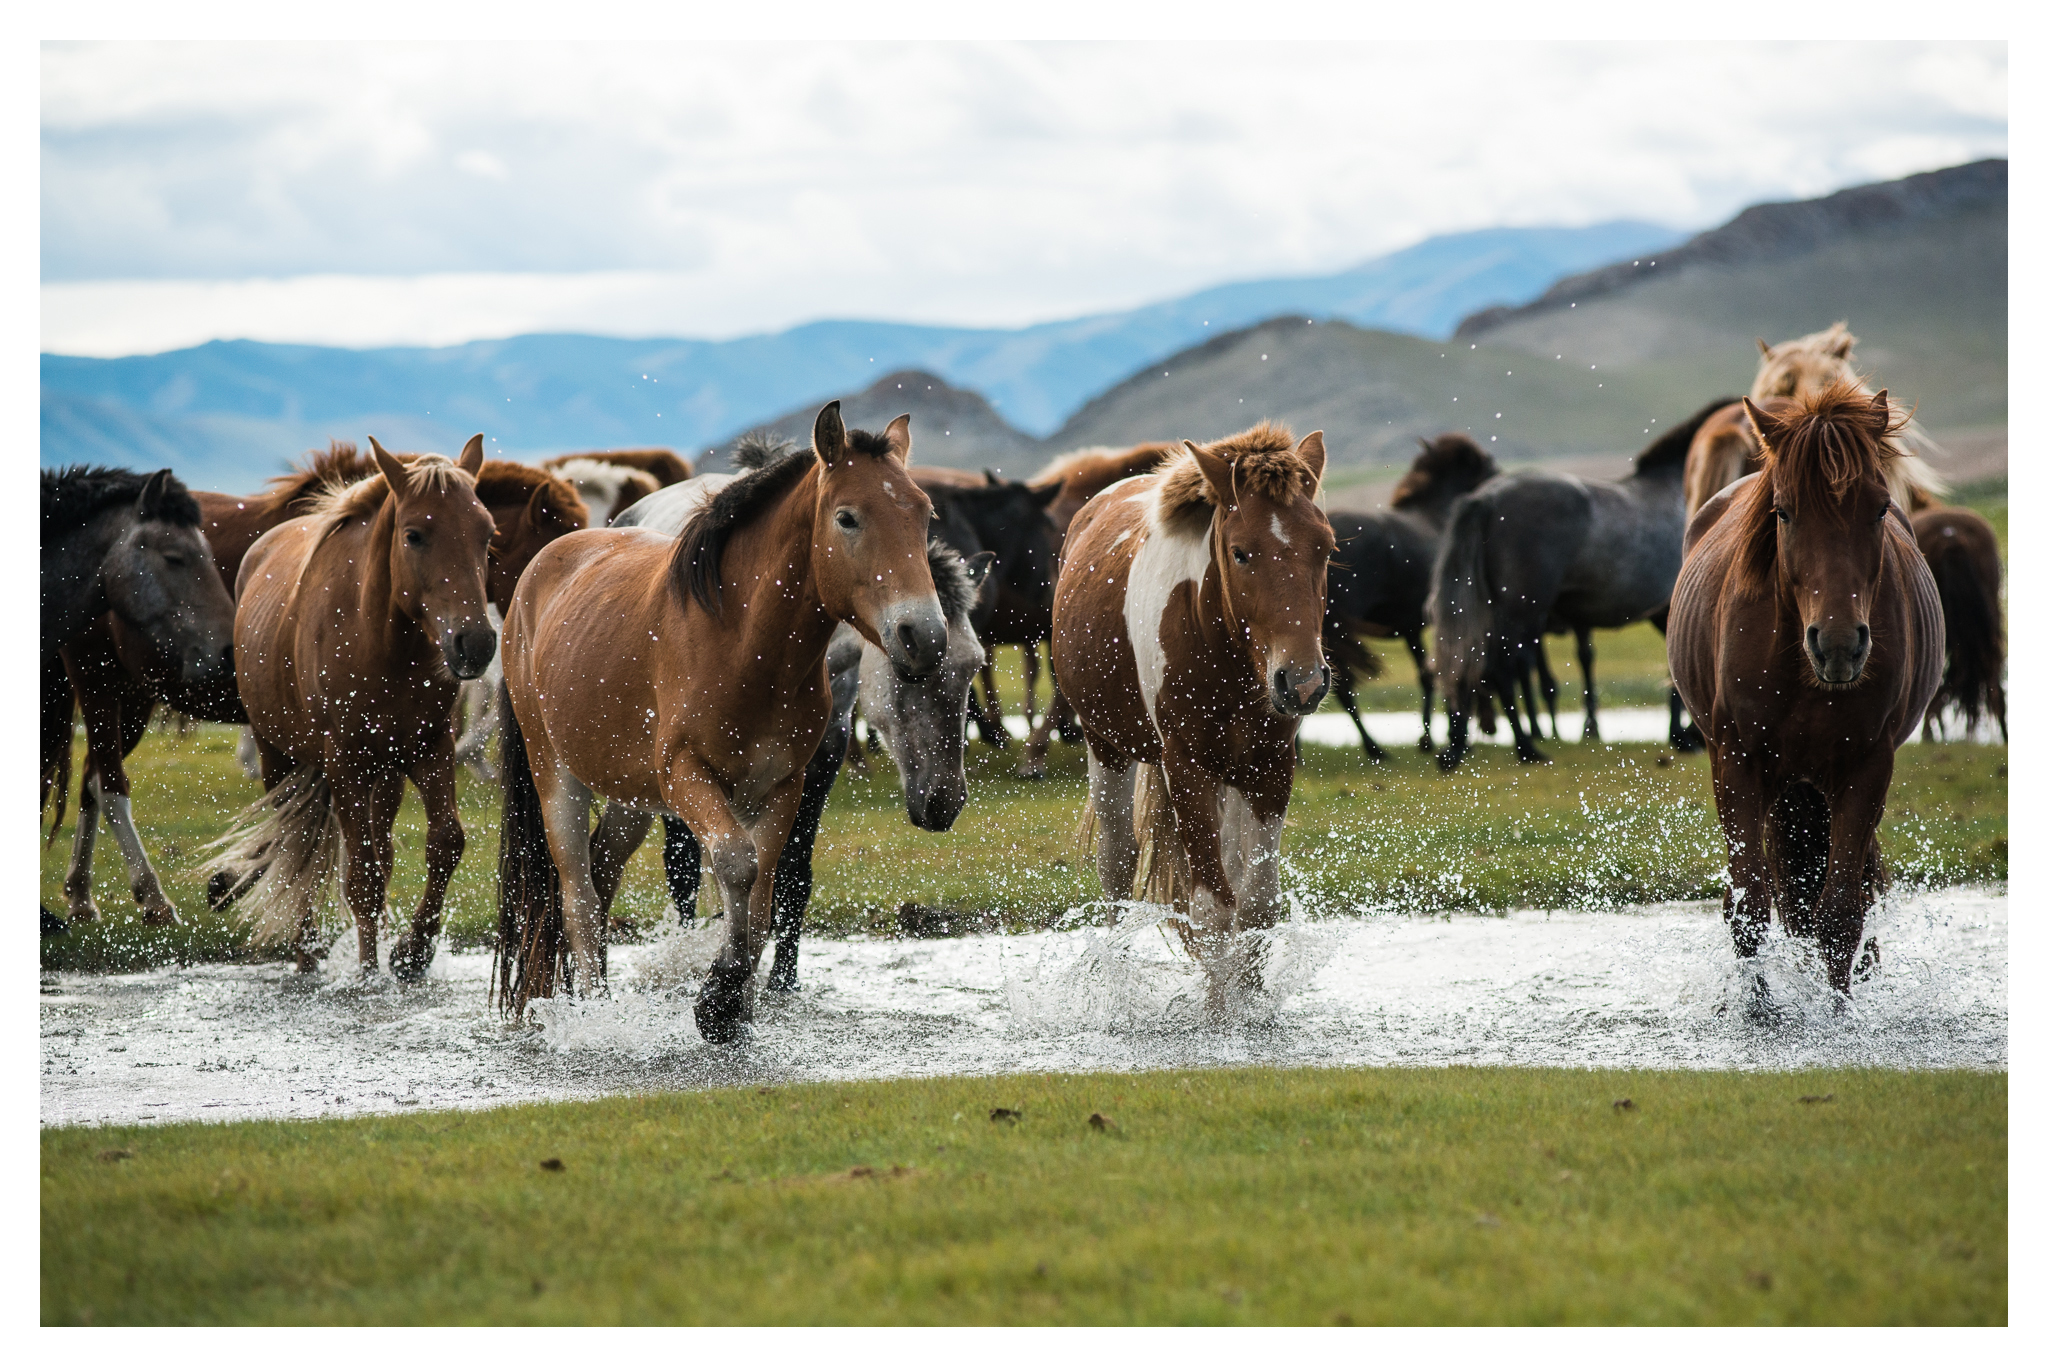 Horses Crossing A Stream